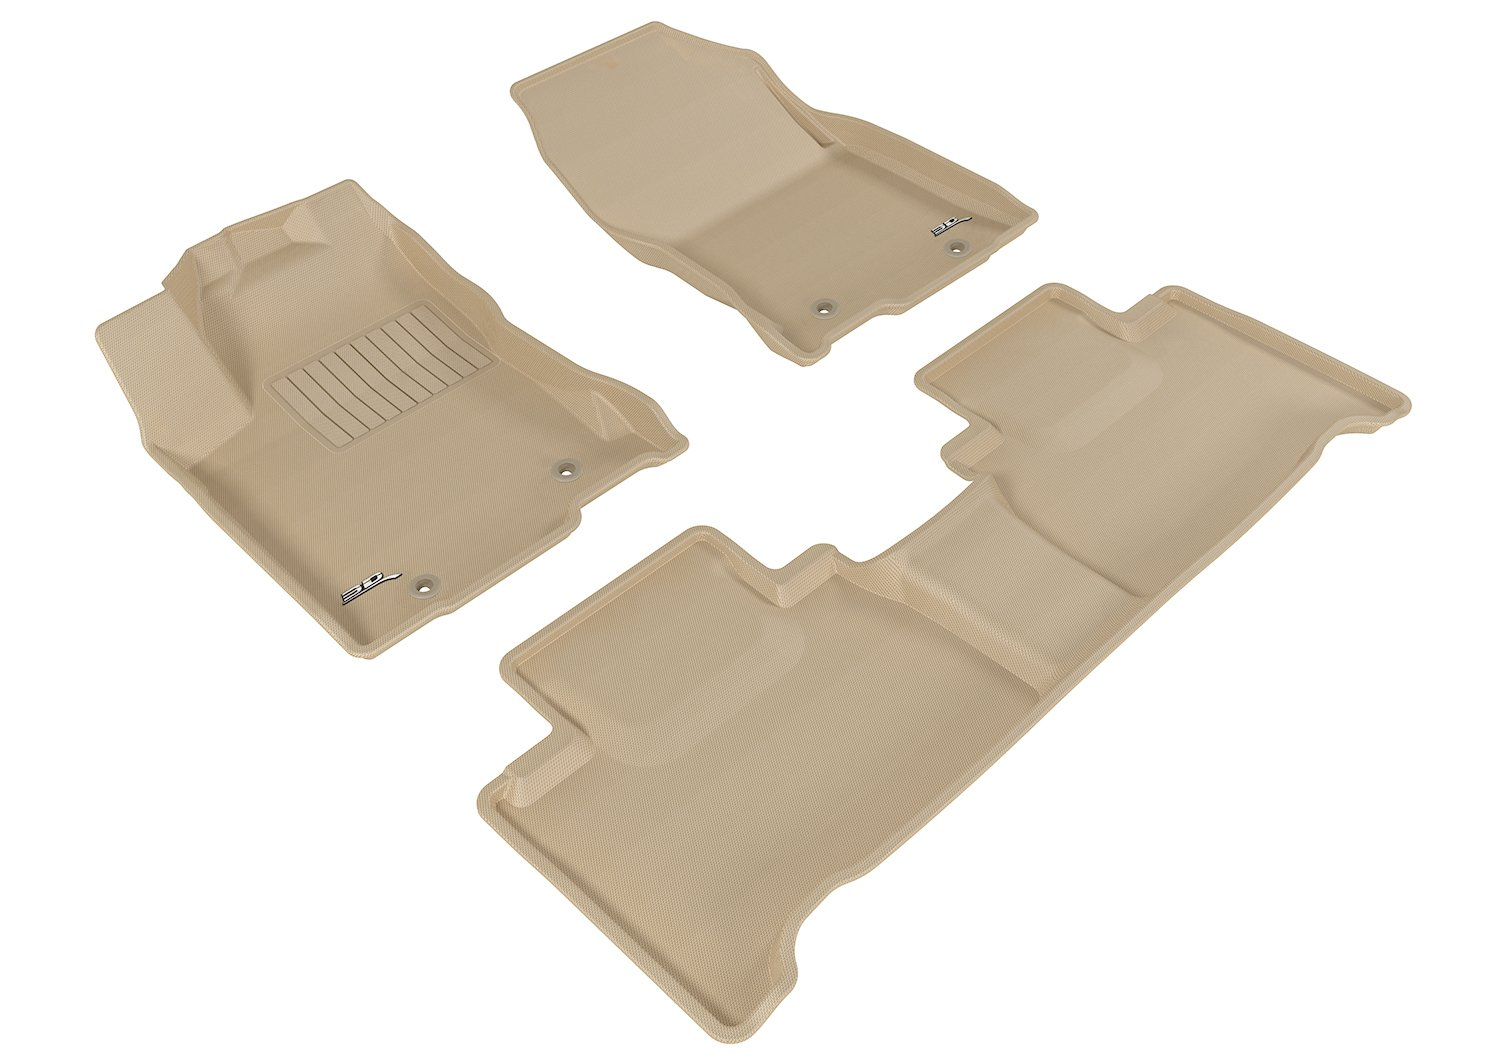 L1LX05101502 Tan Kagu Rubber 3D MAXpider Complete Set Custom Fit All-Weather Floor Mat for Select Lexus NX// NX Hybrid Models